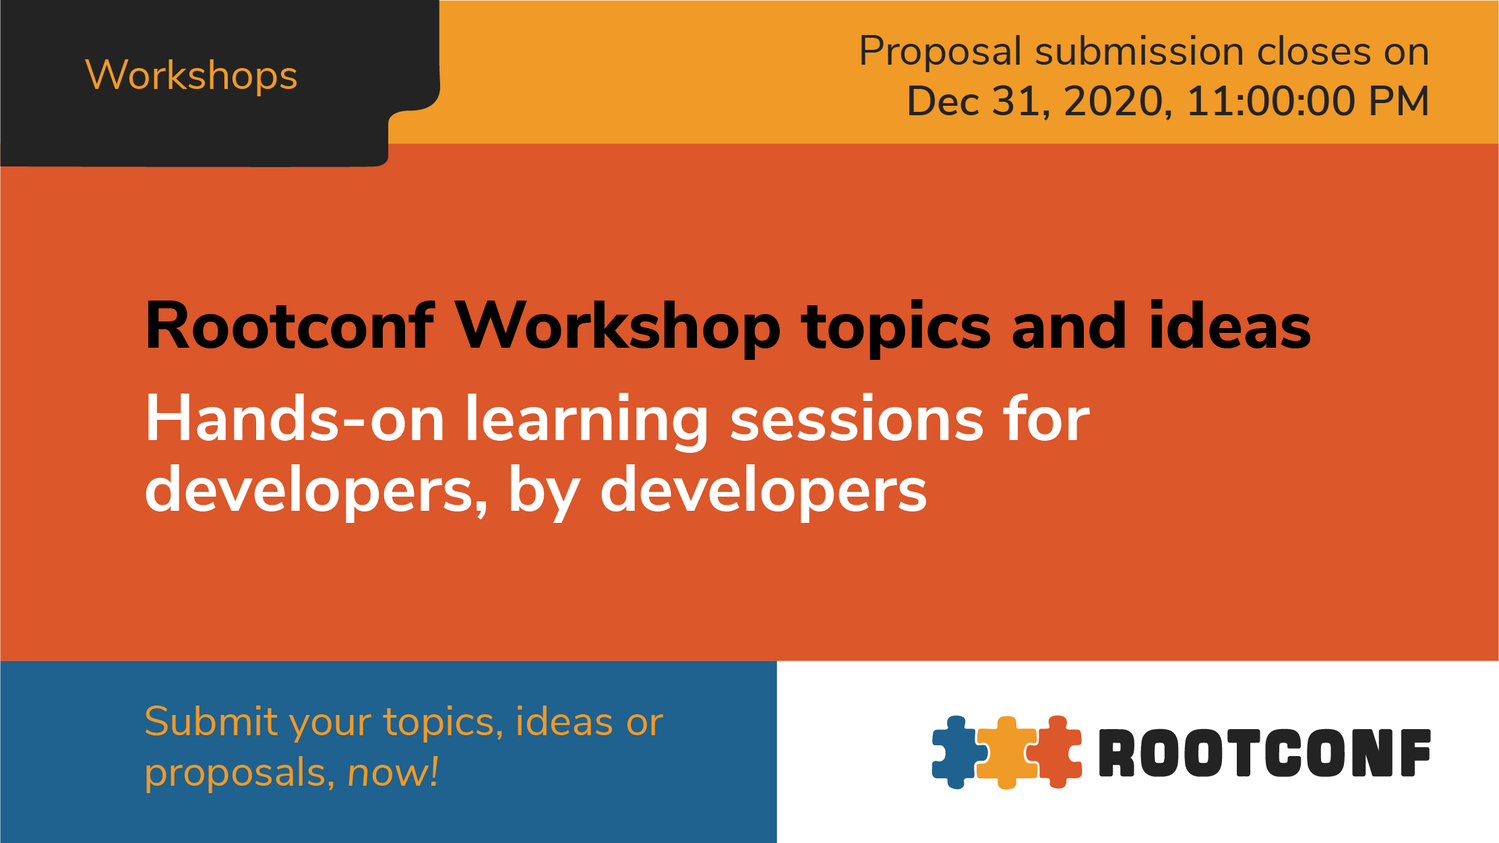 Call for Proposals for Workshops